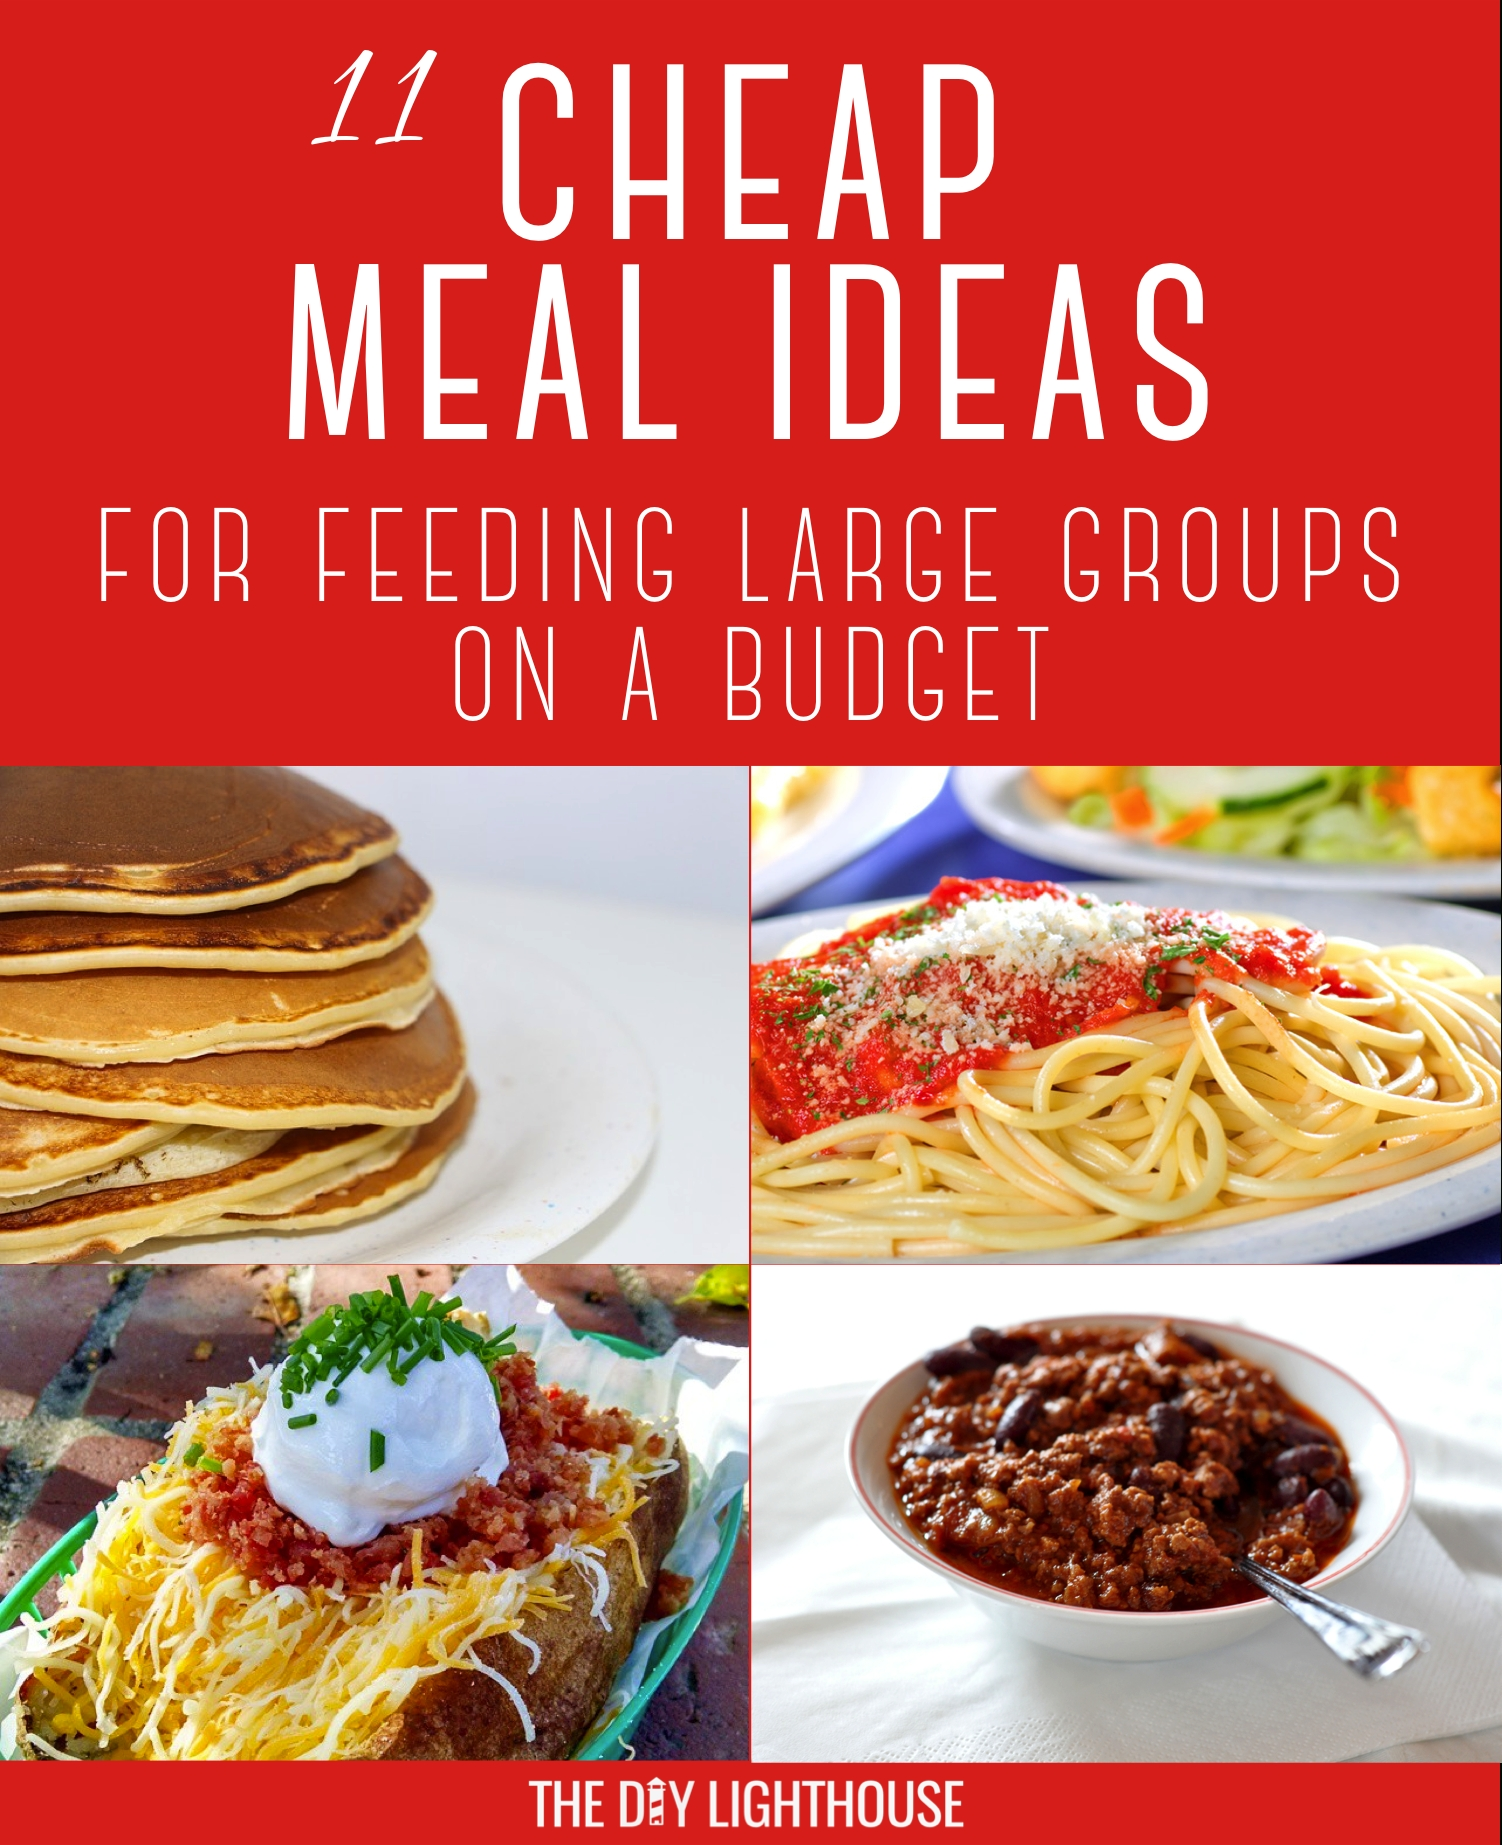 10 Ideal Breakfast Ideas For Large Groups cheap meals for feeding large groups 2 2020